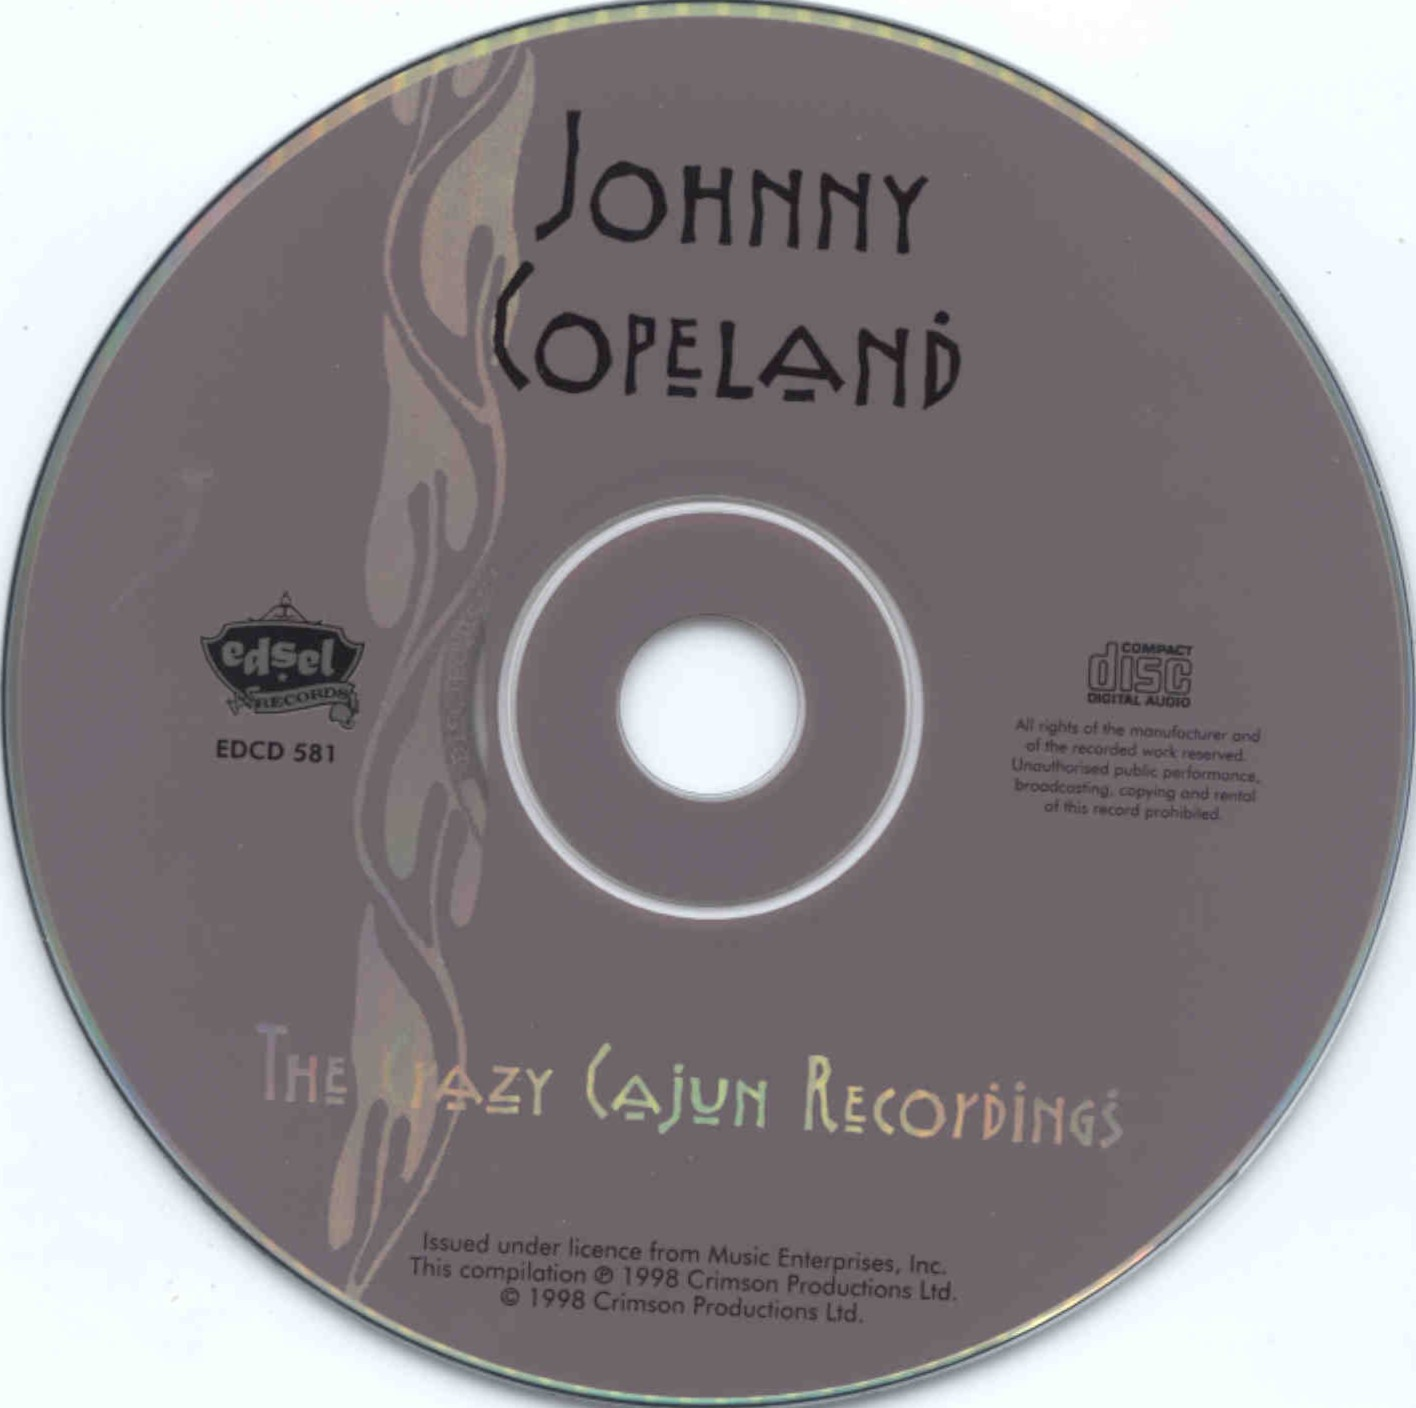 Johnny Copeland - The Crazy Cajun Recordings - CD